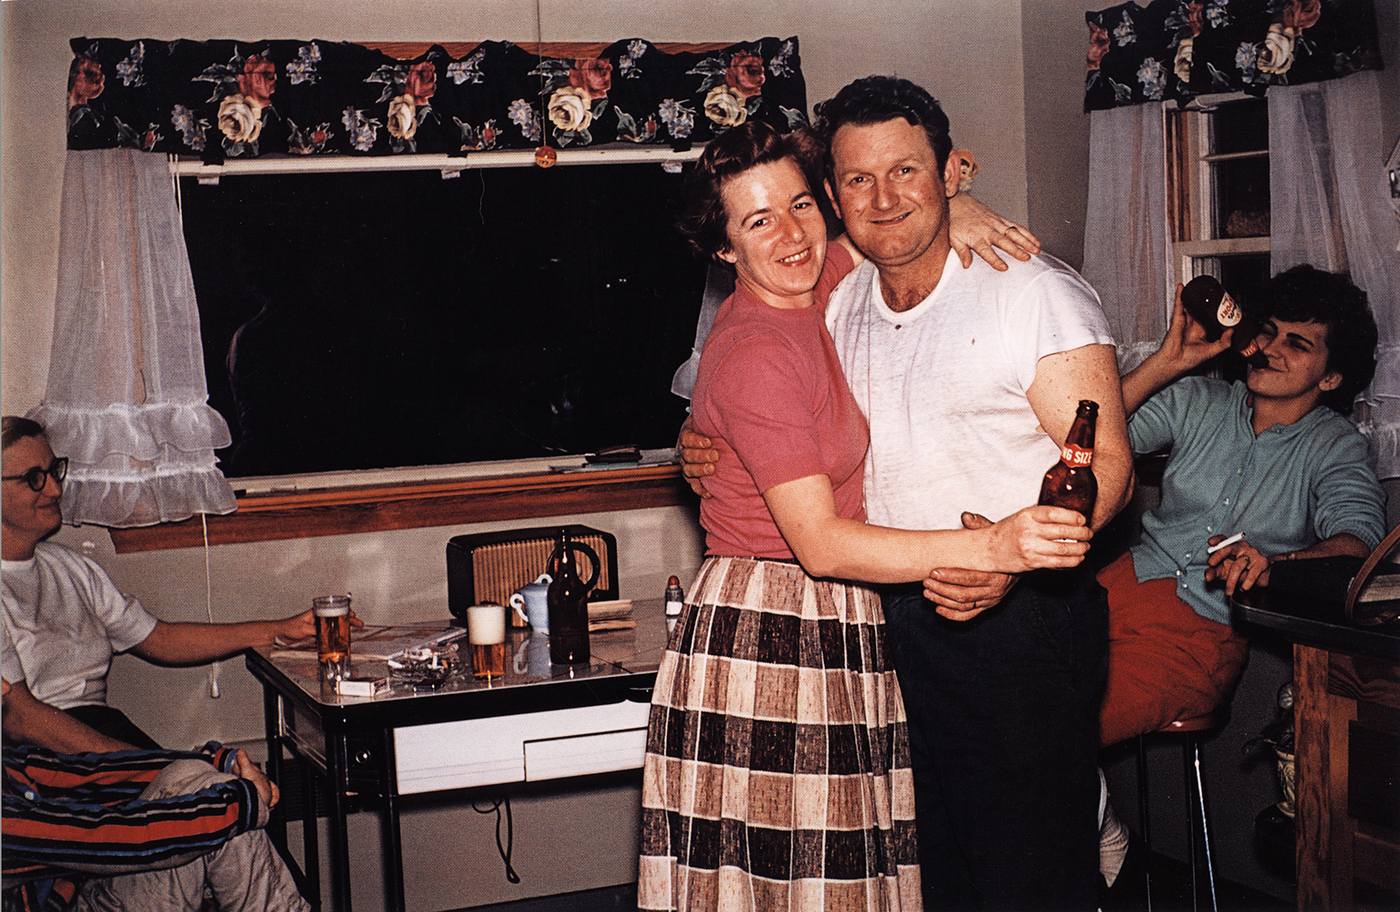 Guy Stricherz Americans in Kodachrome 1945-1965  Dancing in the Kitchen, Preston, Connecticut,  c. 1955  Photographer: Stella and Chester Drong  16 x 20 inches Dye Transfer Print